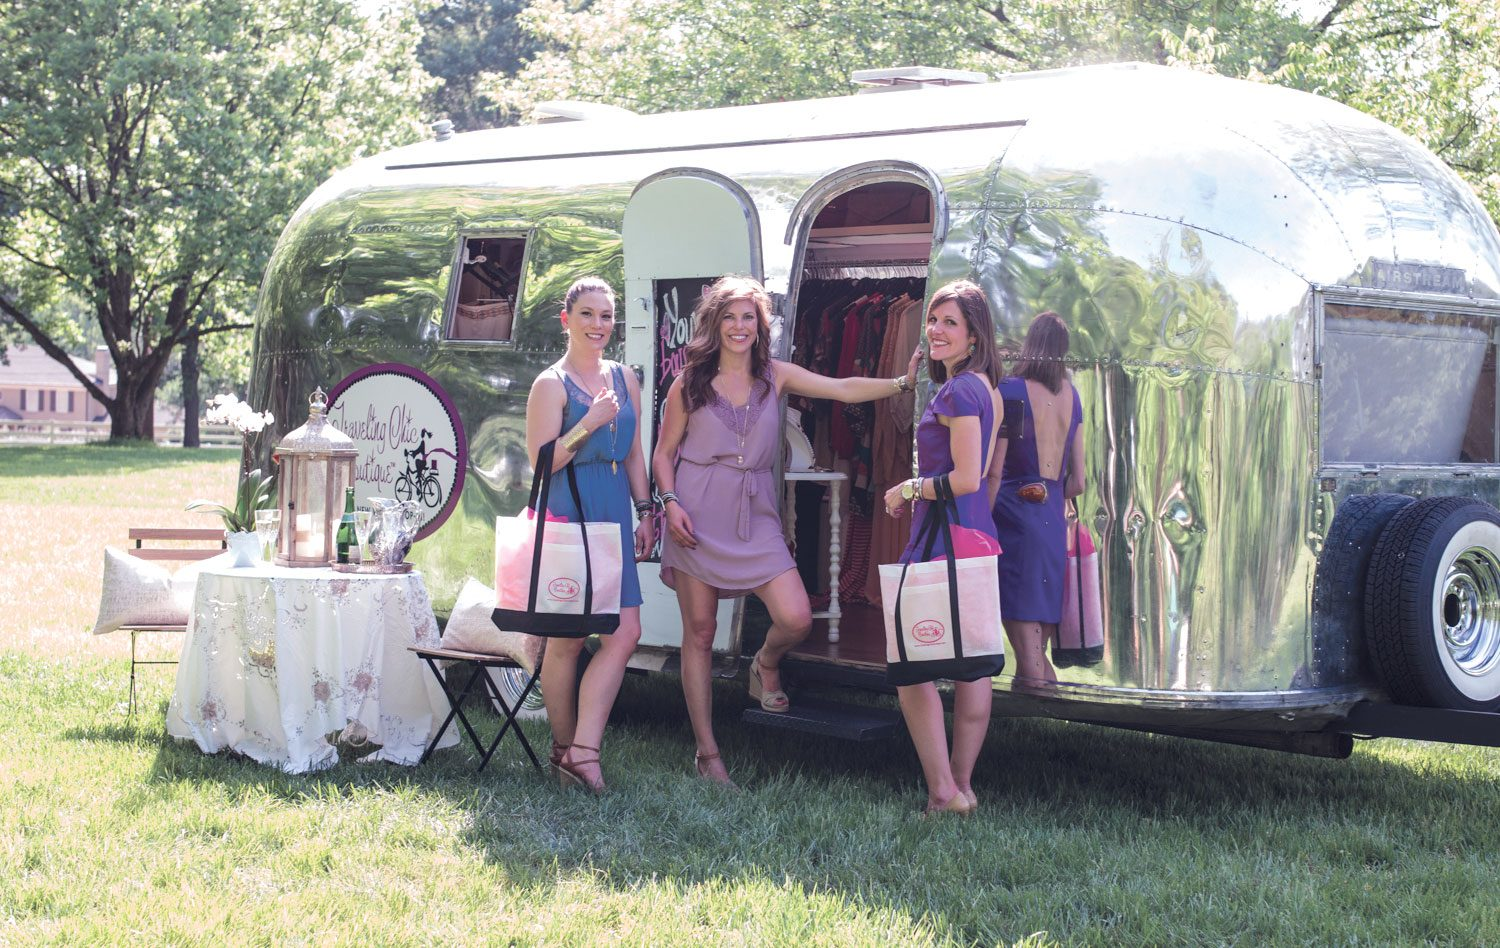 Events-Trunk-Show-Traveling-Boutique-Airstream